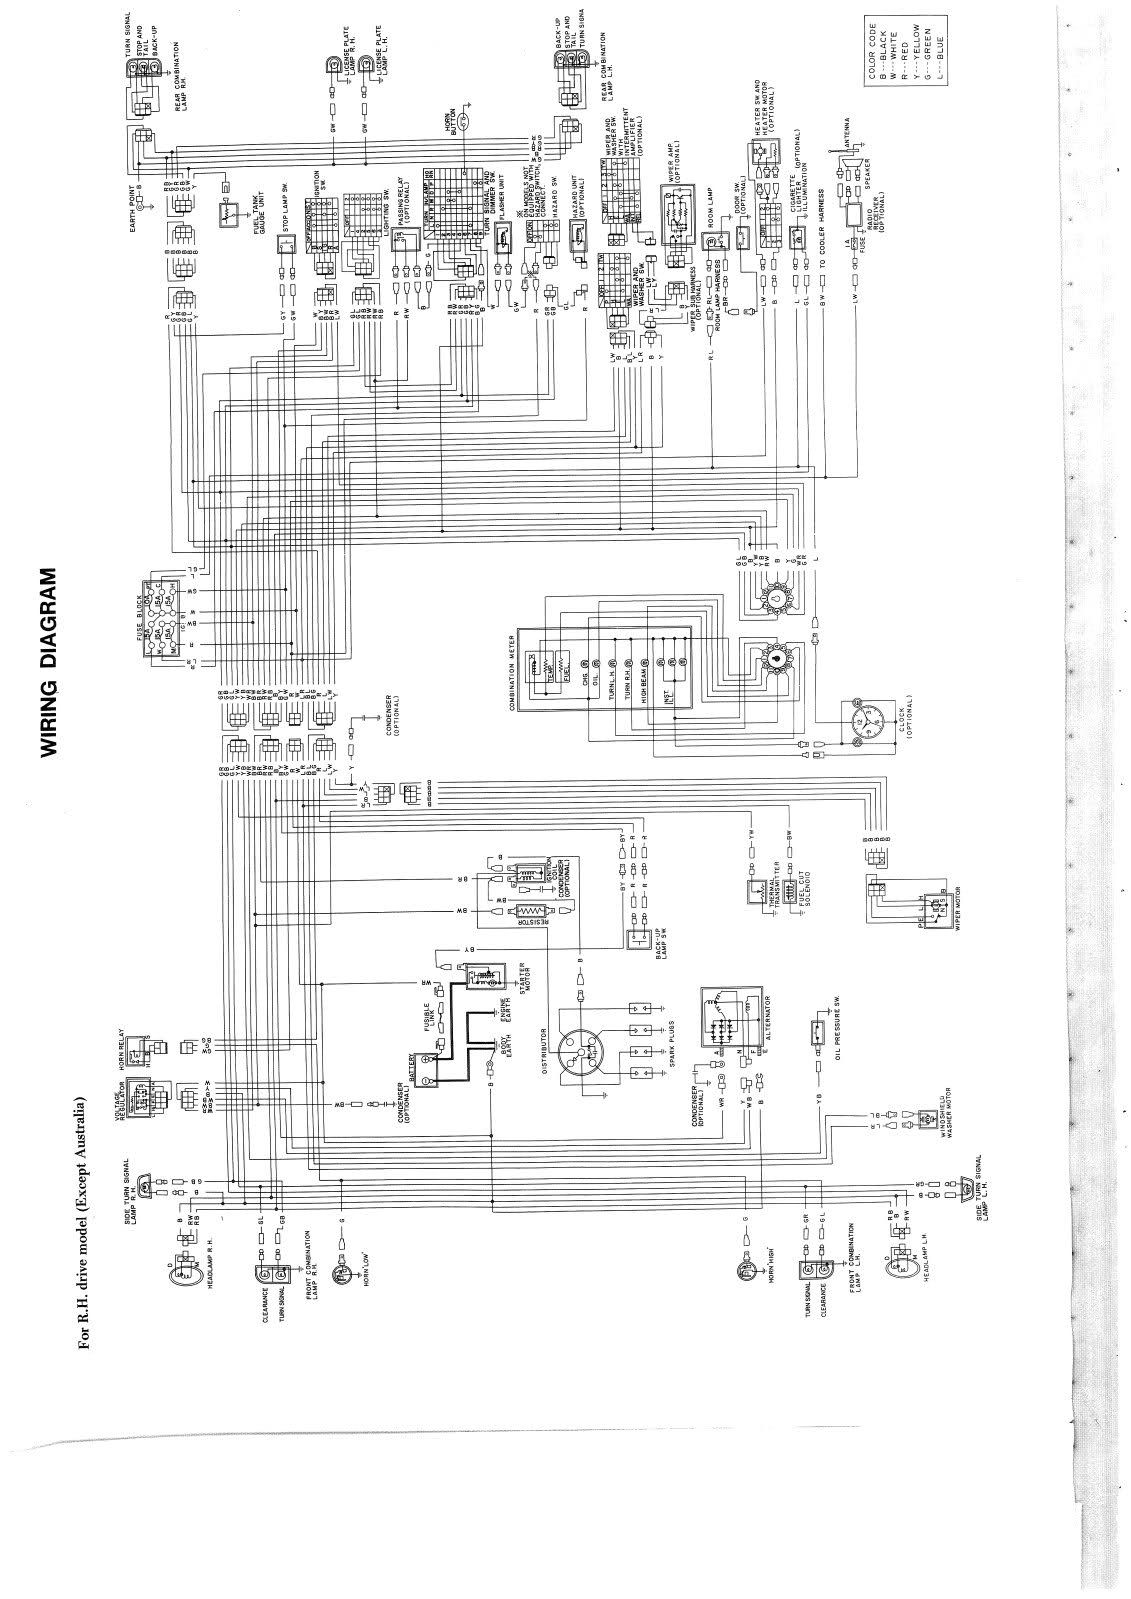 Pleasing Wiring Diagram For Nissan 1400 Bakkie 6 Nissan Nissan Diagram Wiring 101 Ferenstreekradiomeanderfmnl